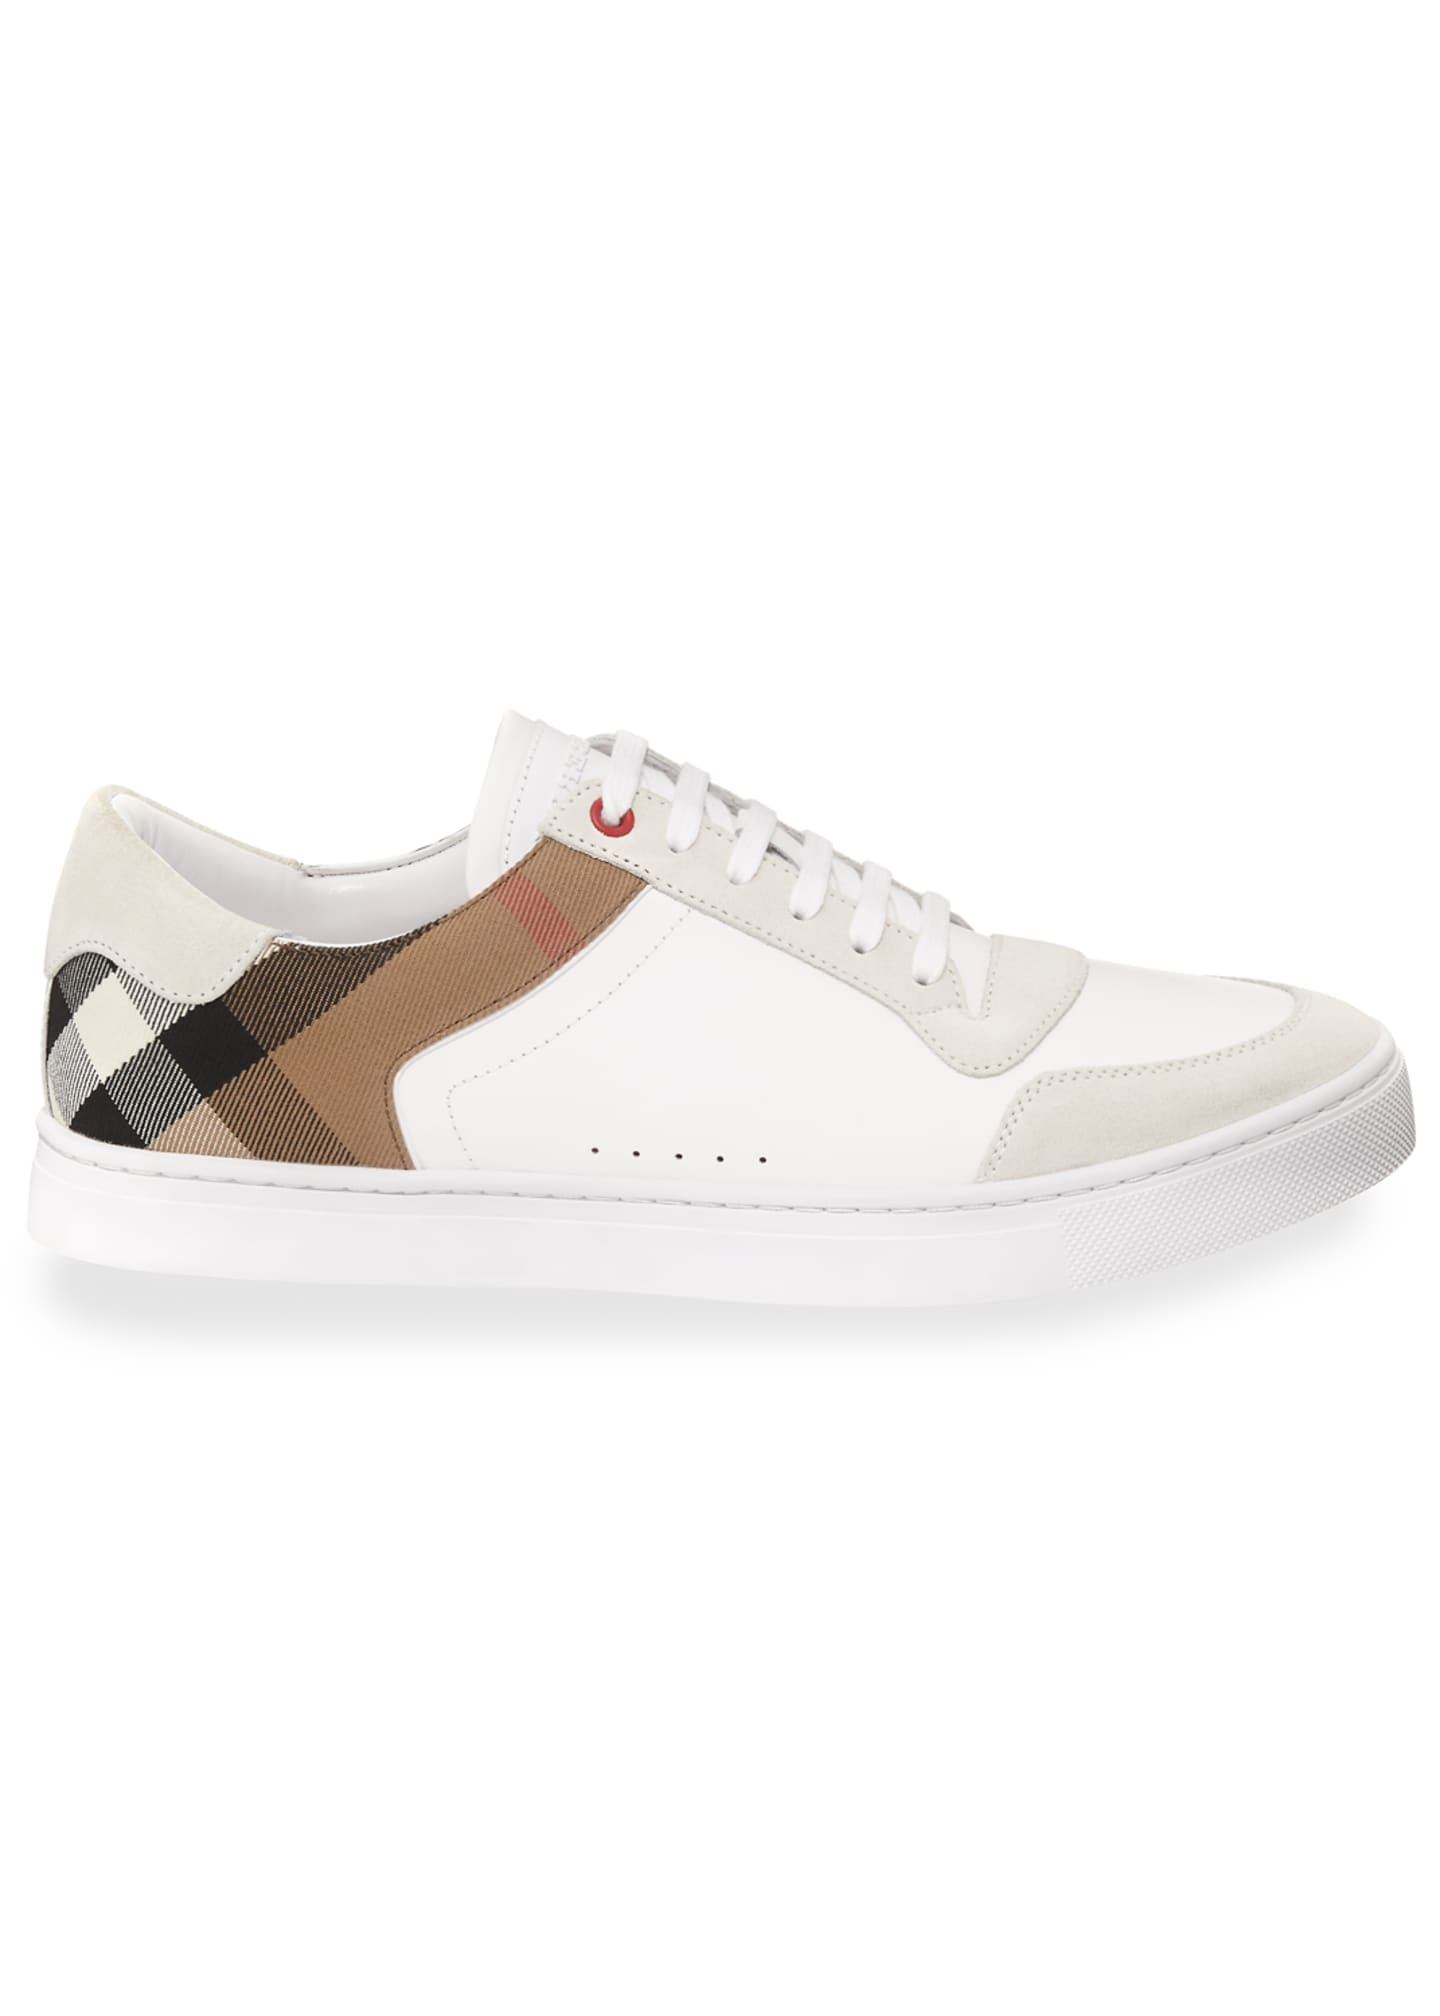 Image 3 of 3: Men's Reeth Leather & House Check Low-Top Sneakers, White